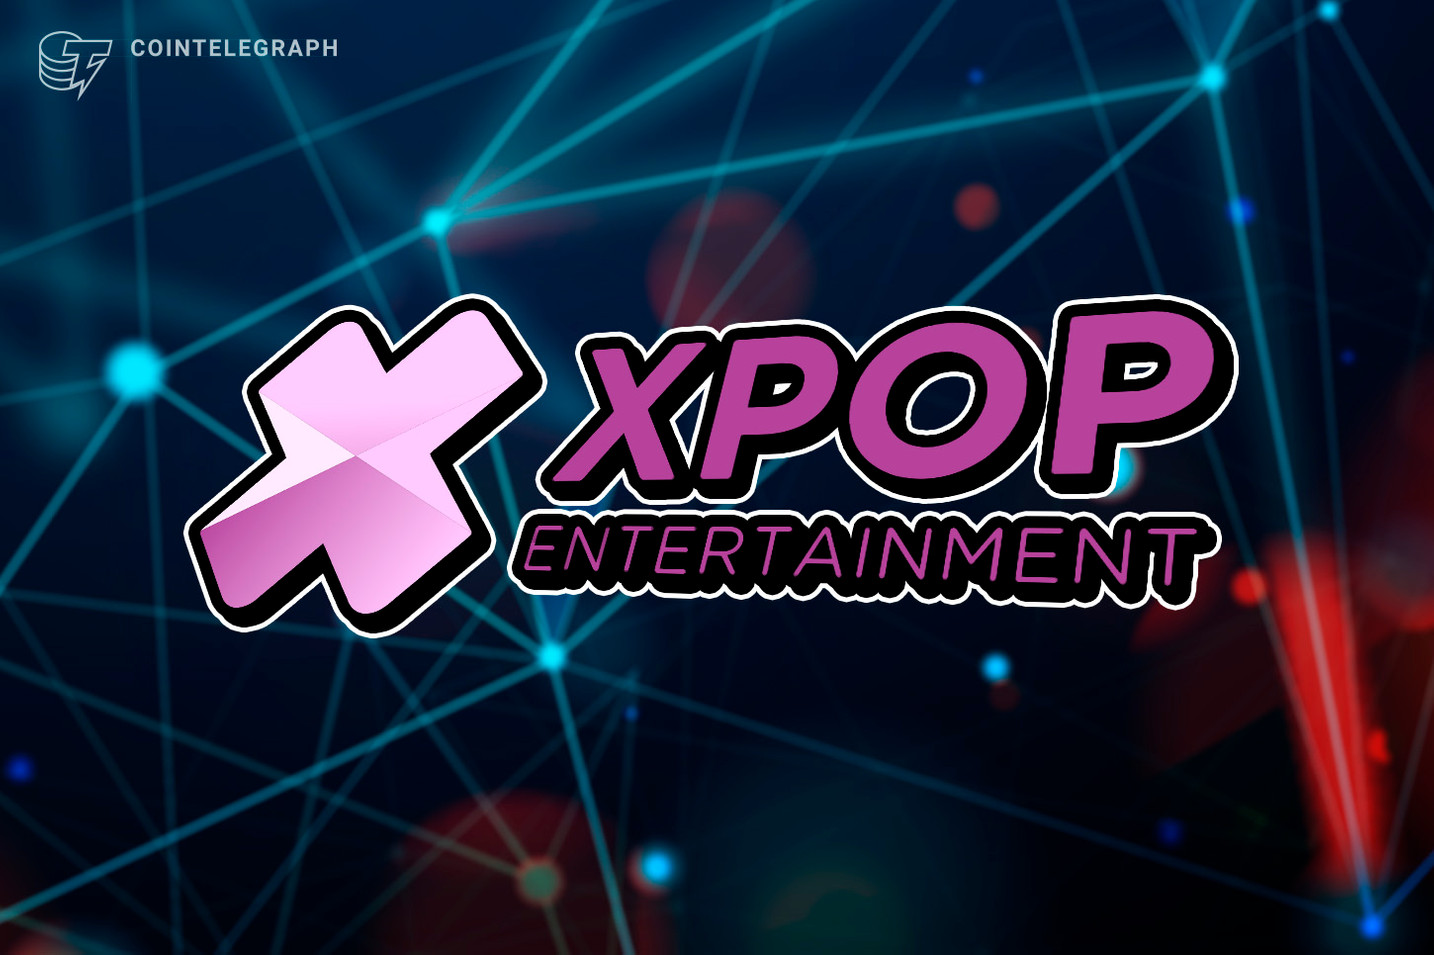 Blockchain-based digital entertainment platform Xpop eyes global launch